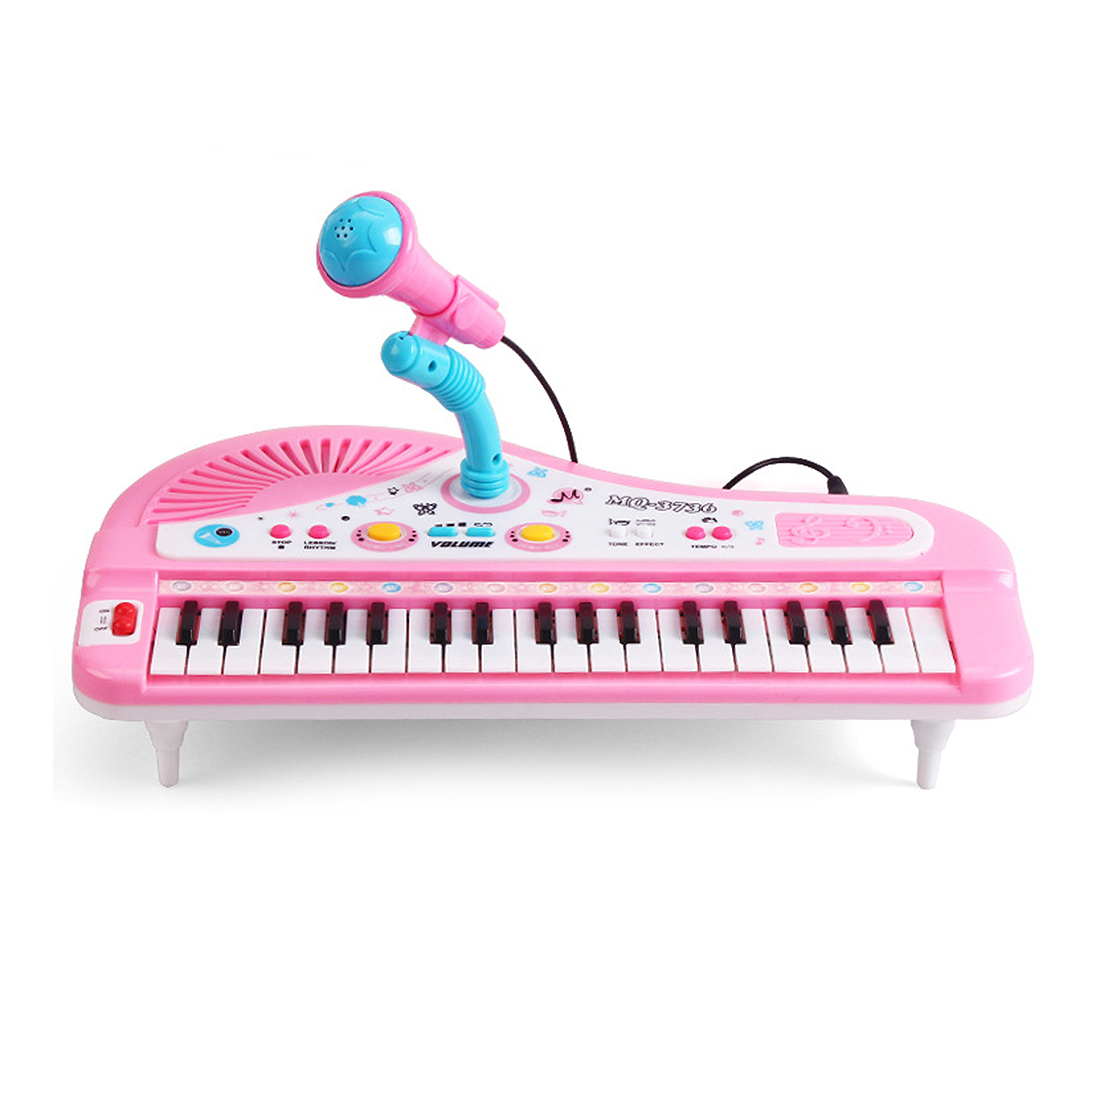 Electronic Organ Keyboard Piano with Microphone 37 Keys Multi-function Kids Children Educational Toys - Pink